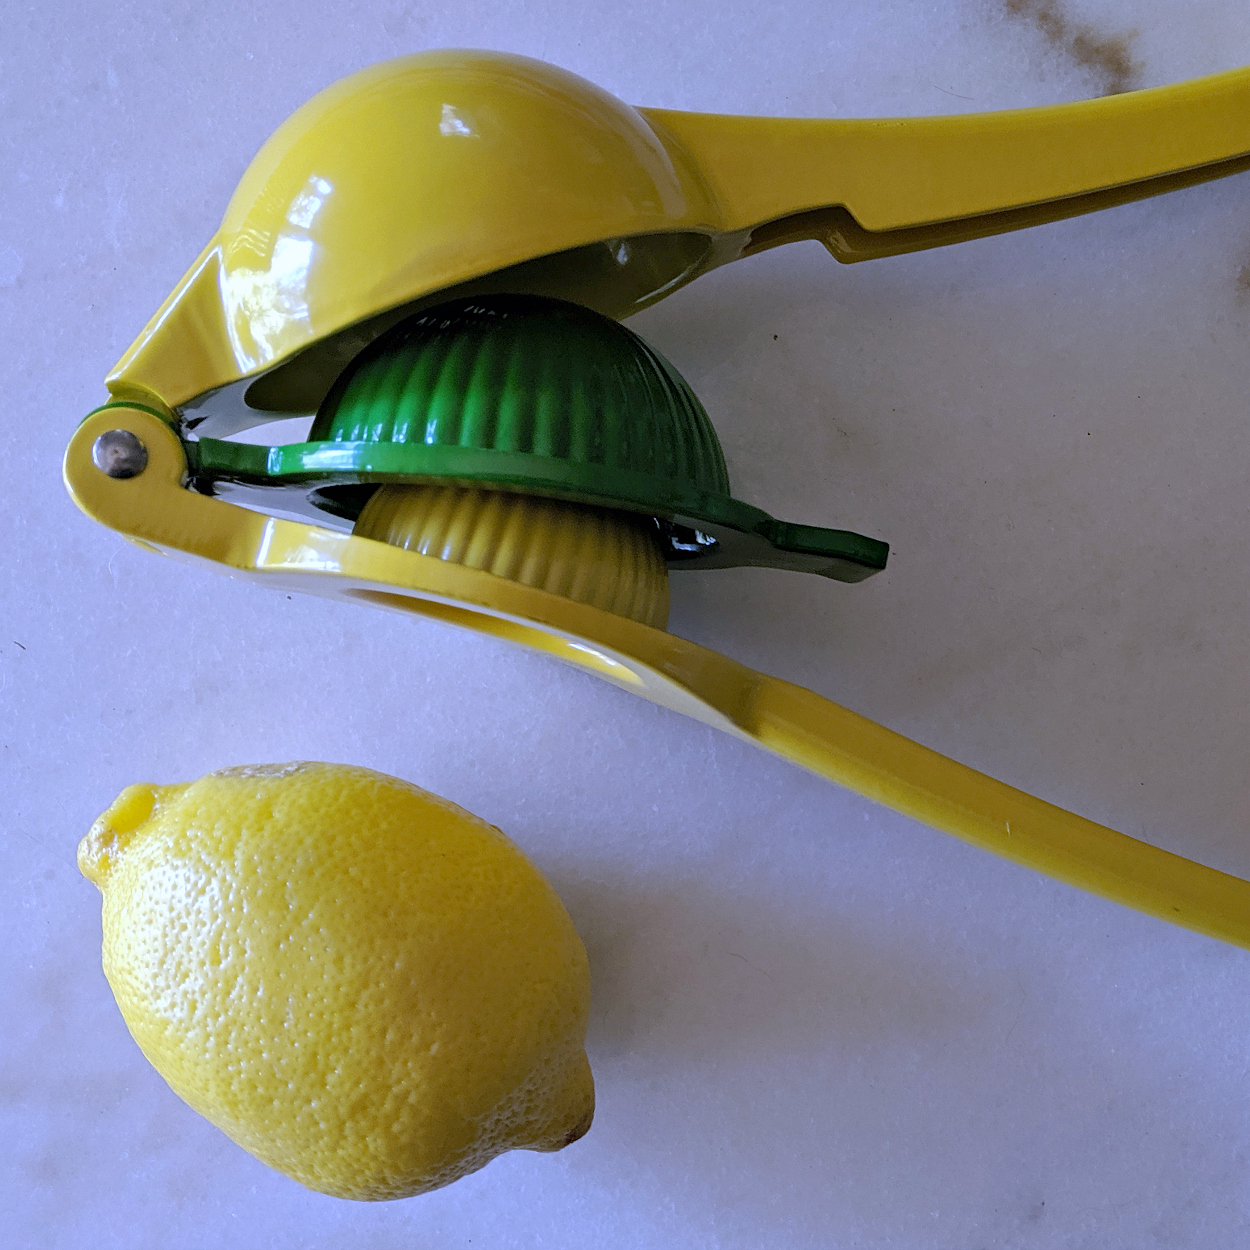 lemon and squeezer on white marble